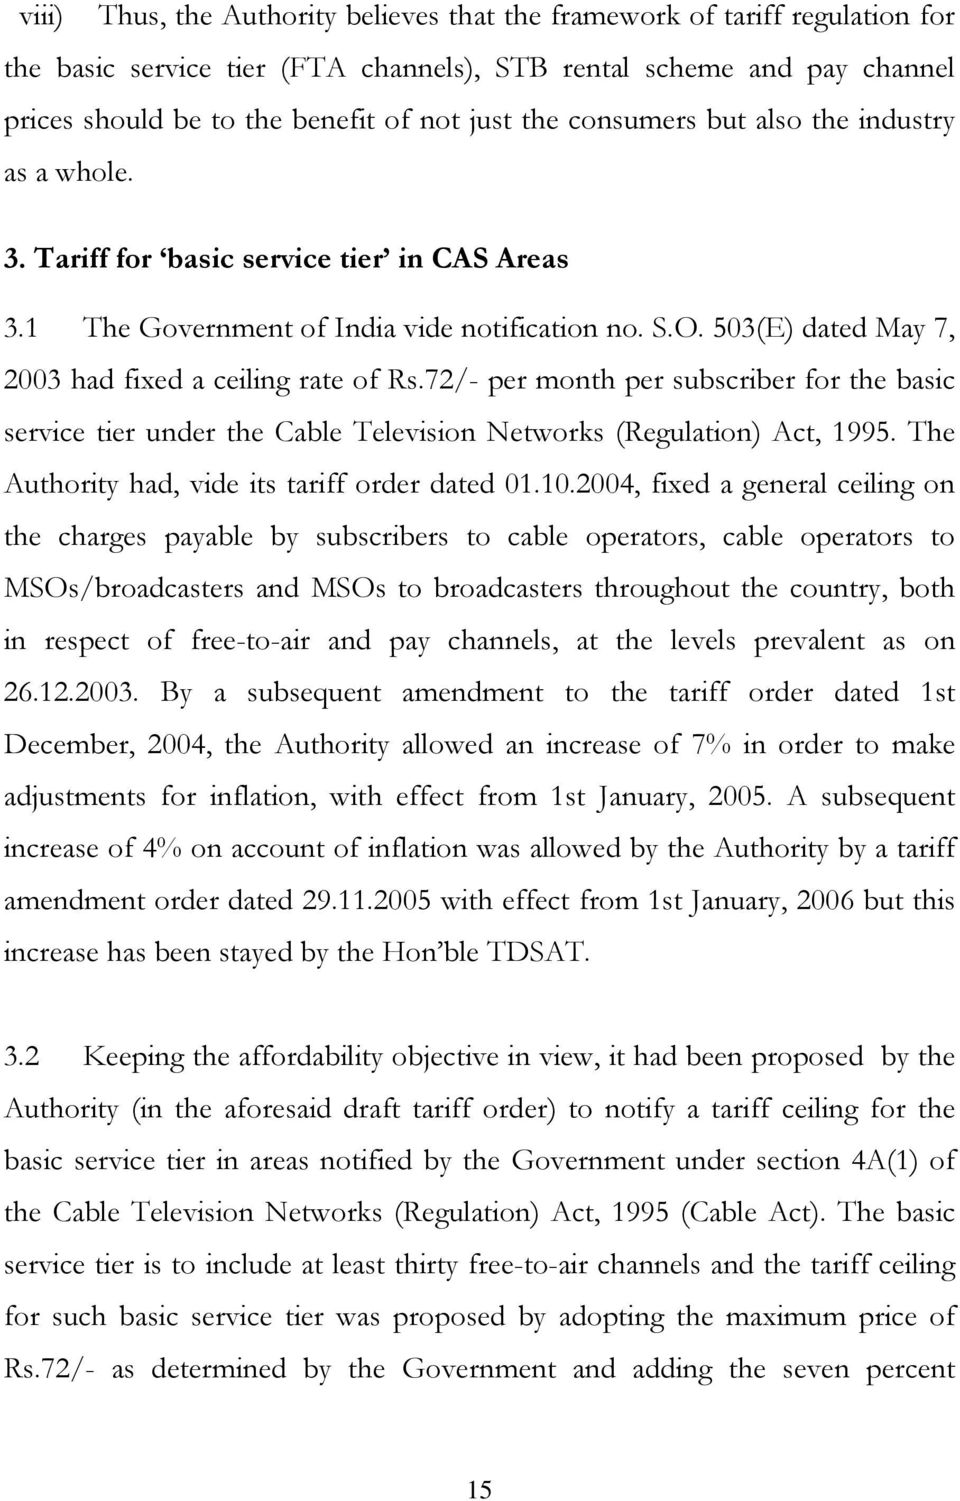 503(E) dated May 7, 2003 had fixed a ceiling rate of Rs.72/- per month per subscriber for the basic service tier under the Cable Television Networks (Regulation) Act, 1995.